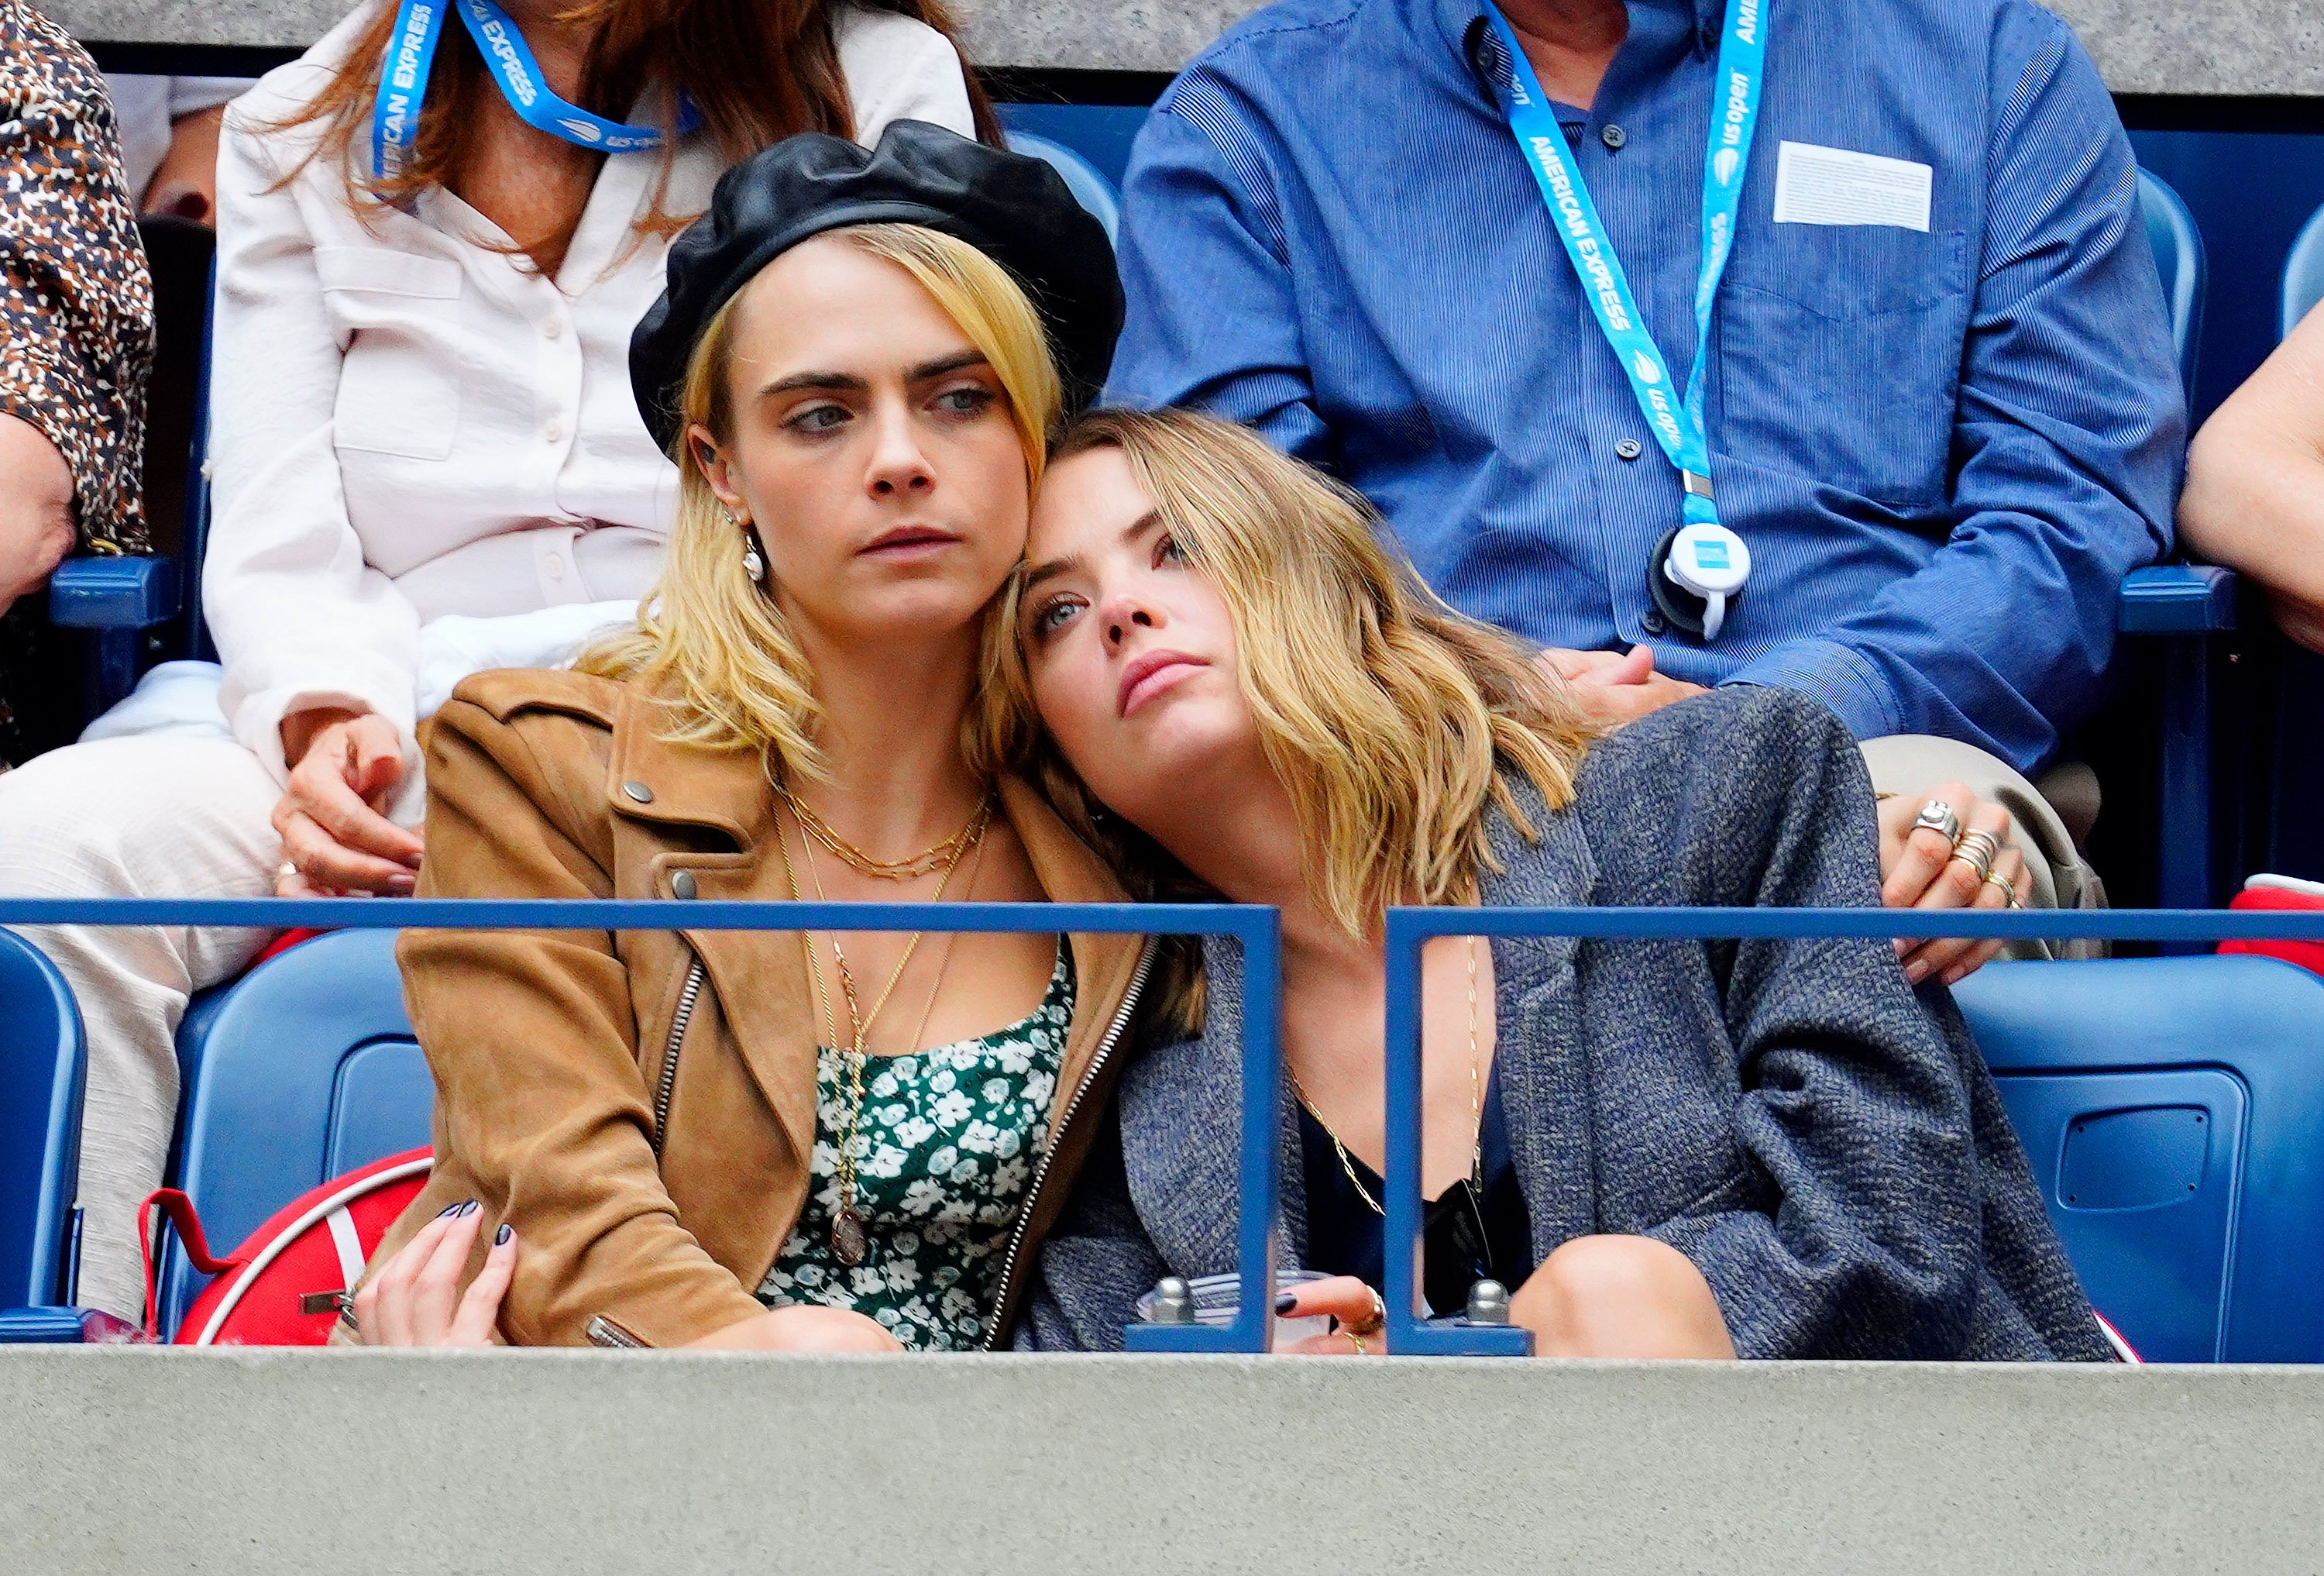 Cara Delevingne und Ashley Benson nehmen am Finale der US Open 2019 am 7. September 2019 in New York City teil | Quelle: Getty Images